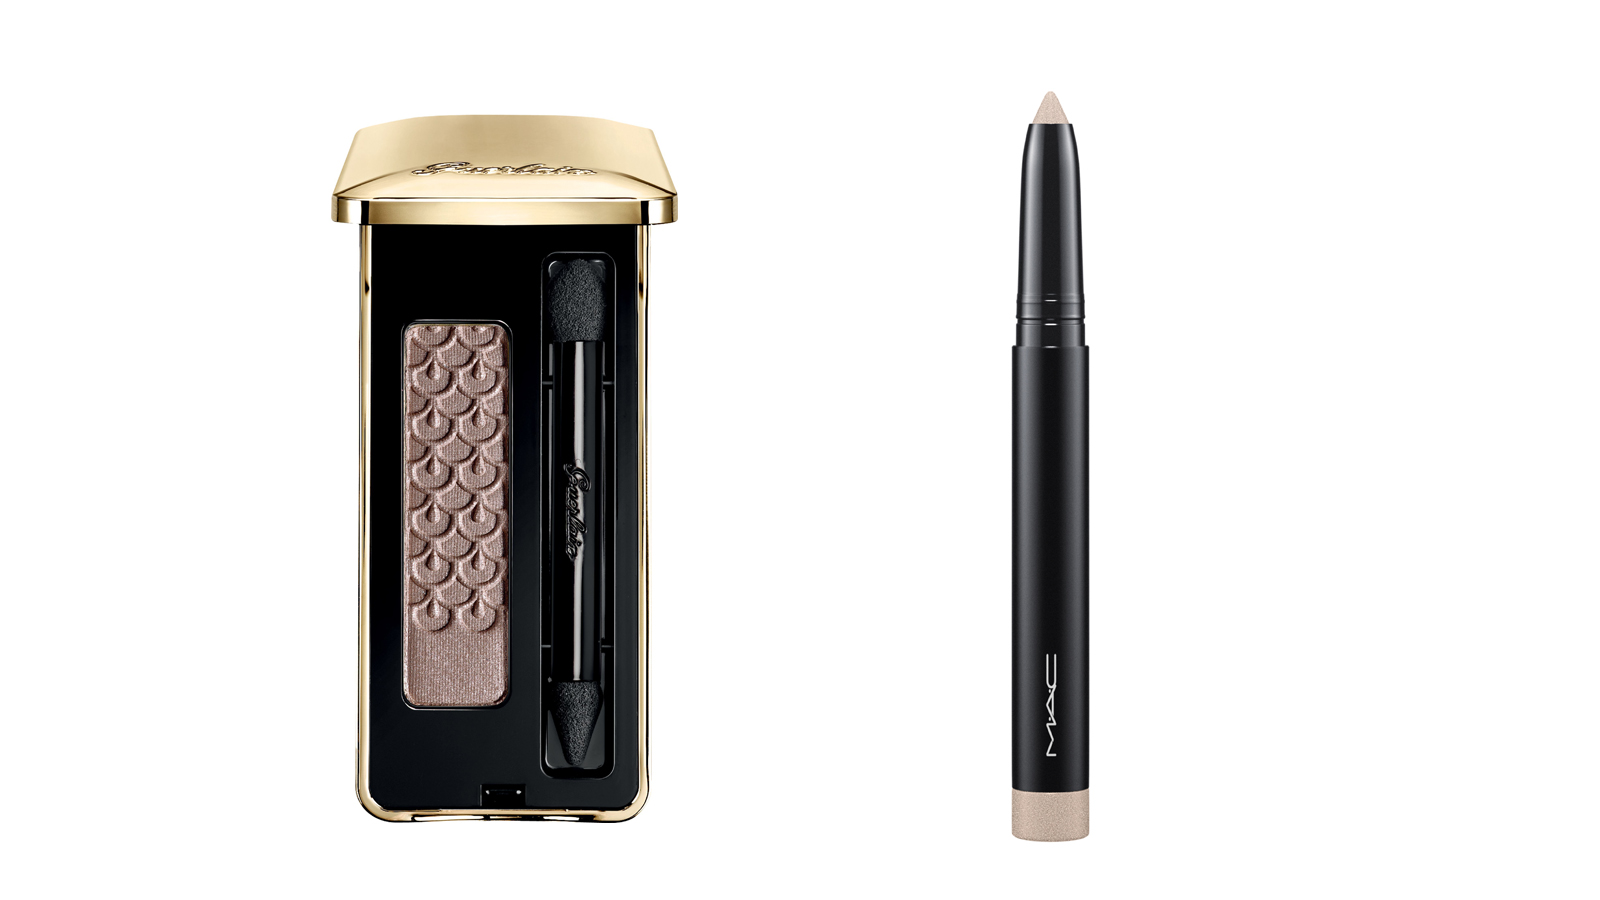 Guerlain Écrin 1 Couleur Long Lasting Eyeshadow in Taupe Secret and MAC Pro Longwear Waterproof Colour Stick in Bleached Out Beige